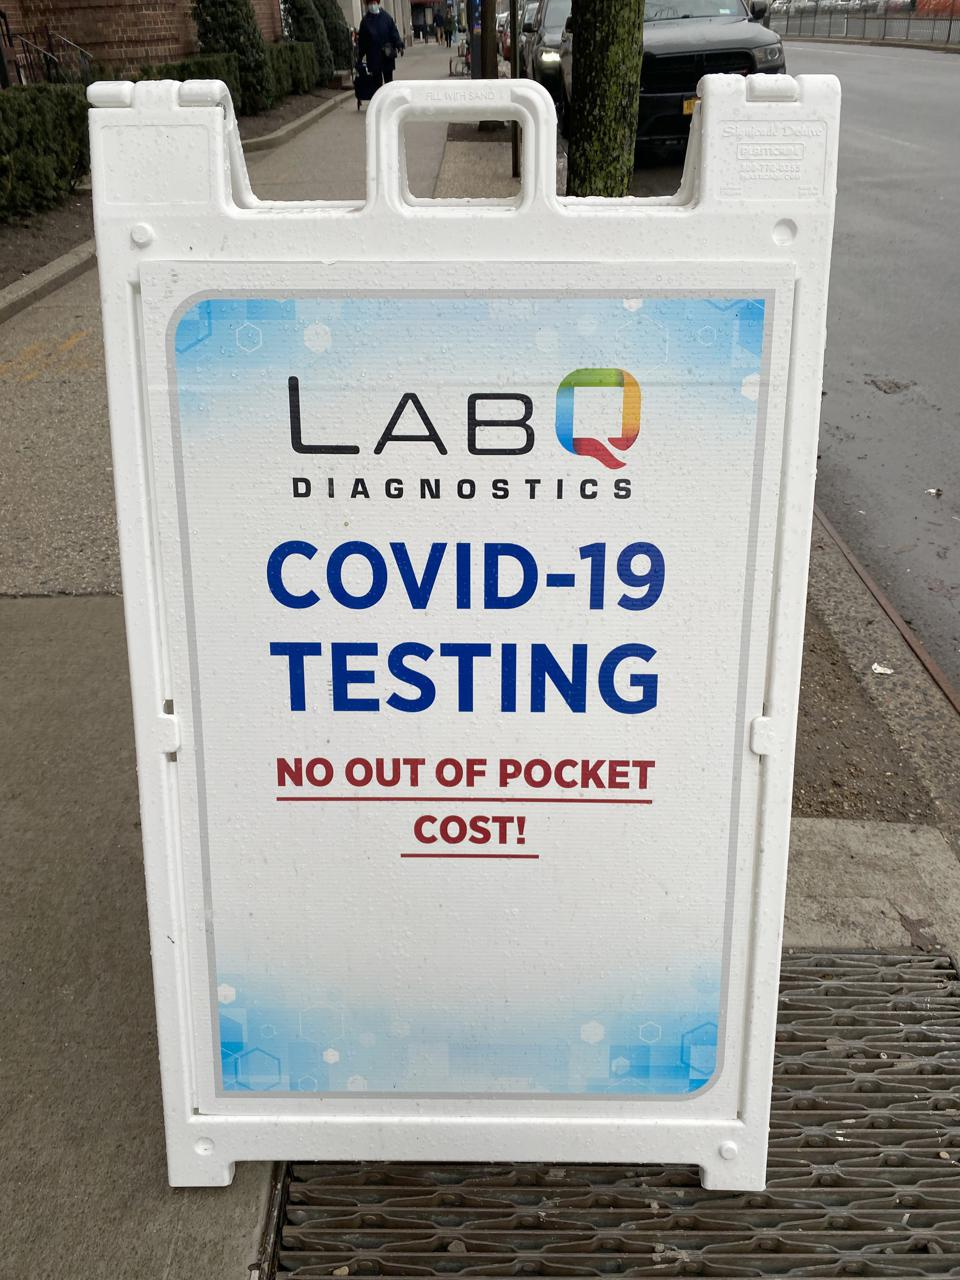 Lab Q Diagnostics, Covid-19 Testing, no out of pocket cost, sandwichboard sign, Queens, New York, pandemic, health and medicine, medical testing, Covid 19, sidewalk, promotion, advertising, information